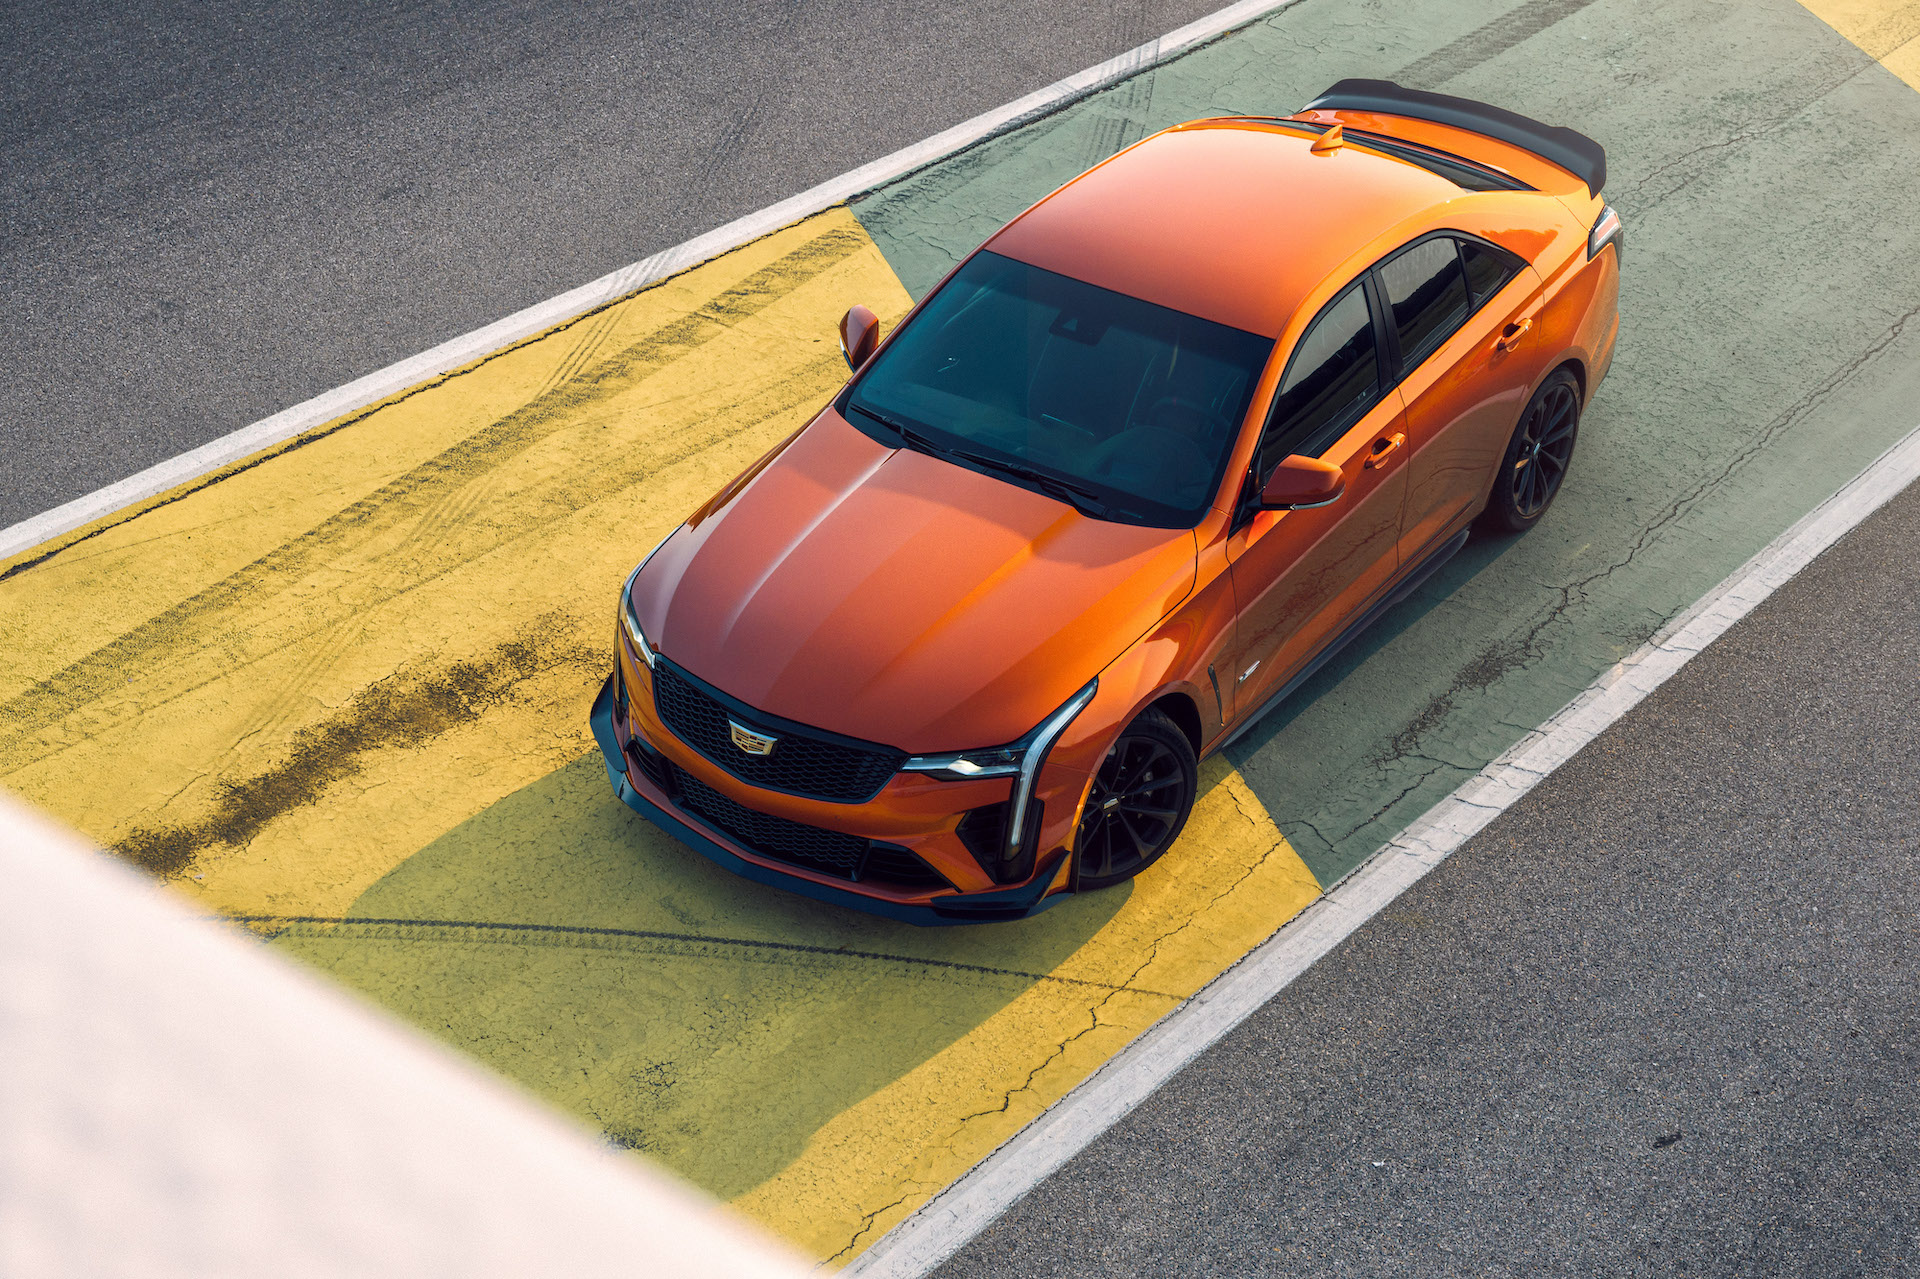 First drive review: 2022 Cadillac CT4-V Blackwing swoops in as a road and track hero